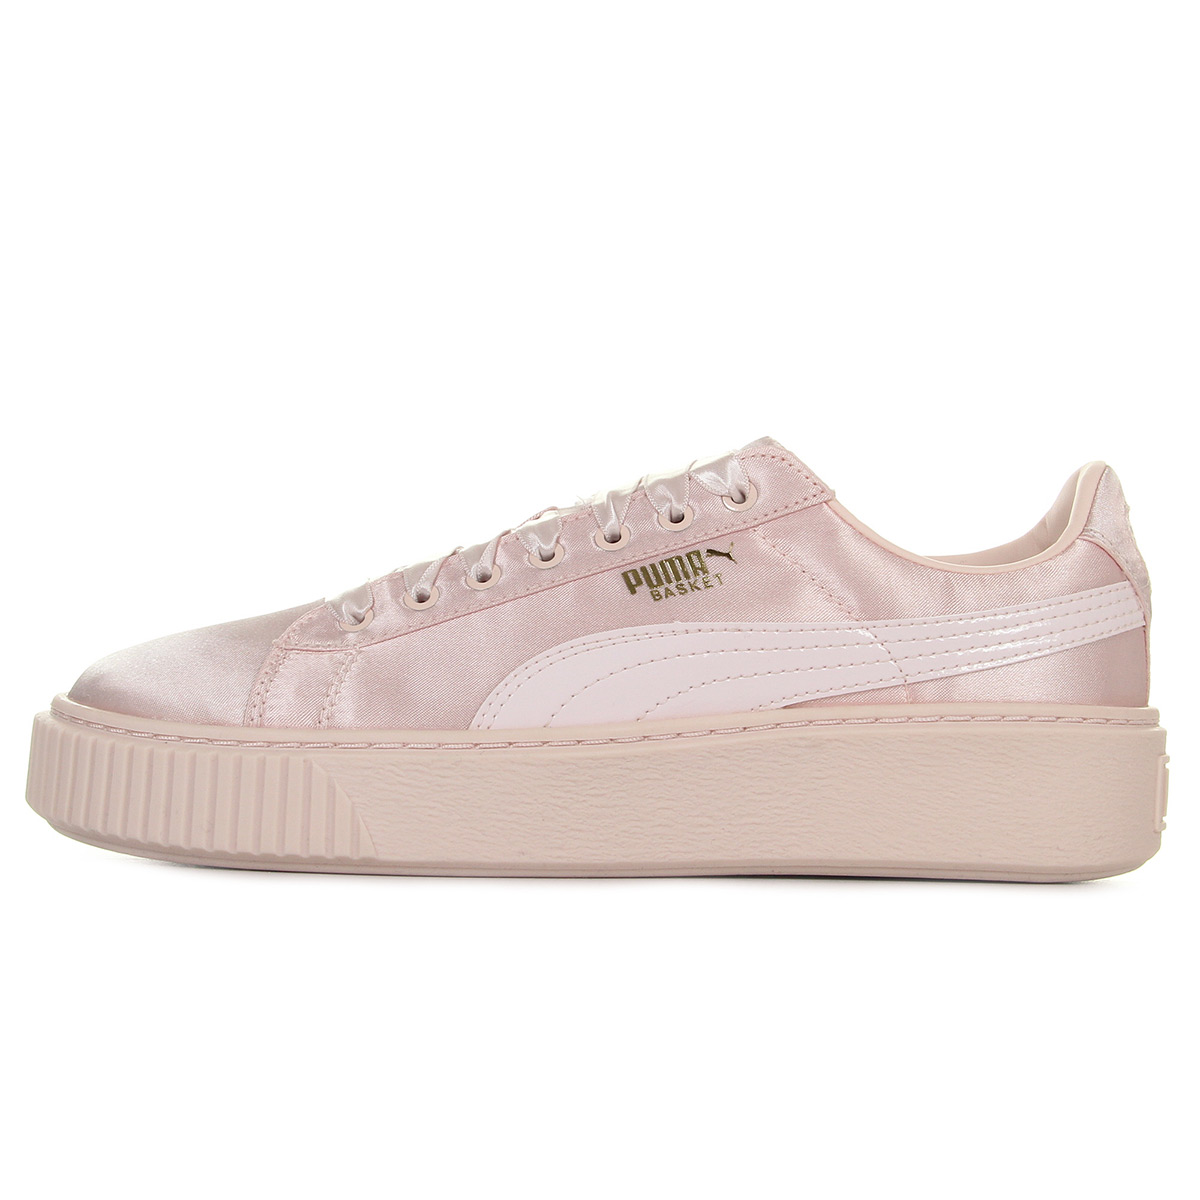 Puma Basket Platform Tween Jr Pearl-Pearl 36513301, Baskets mode femme